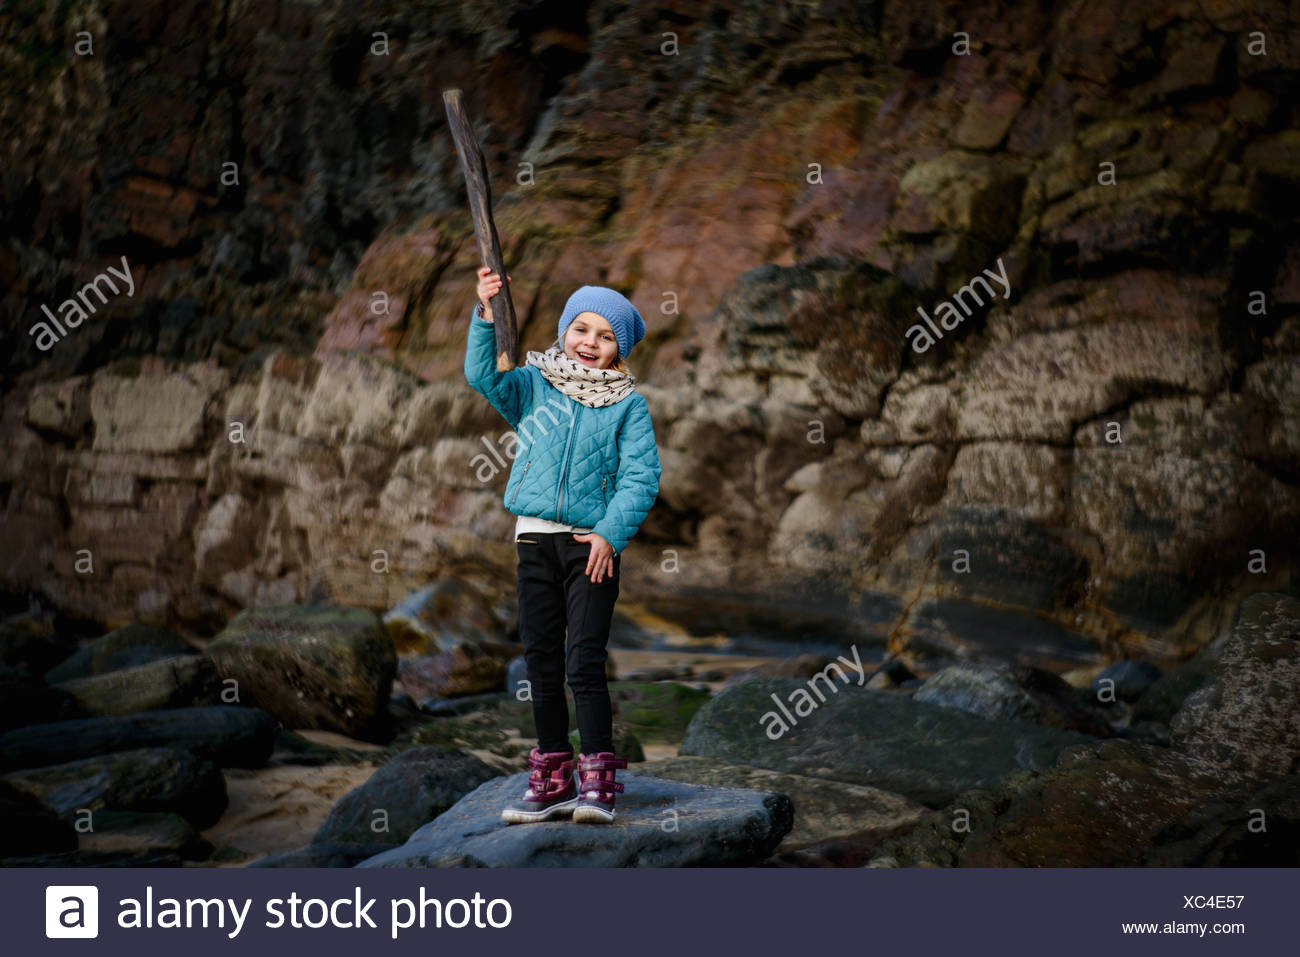 Girl standing on rock at the beach holding a stick - Stock Image